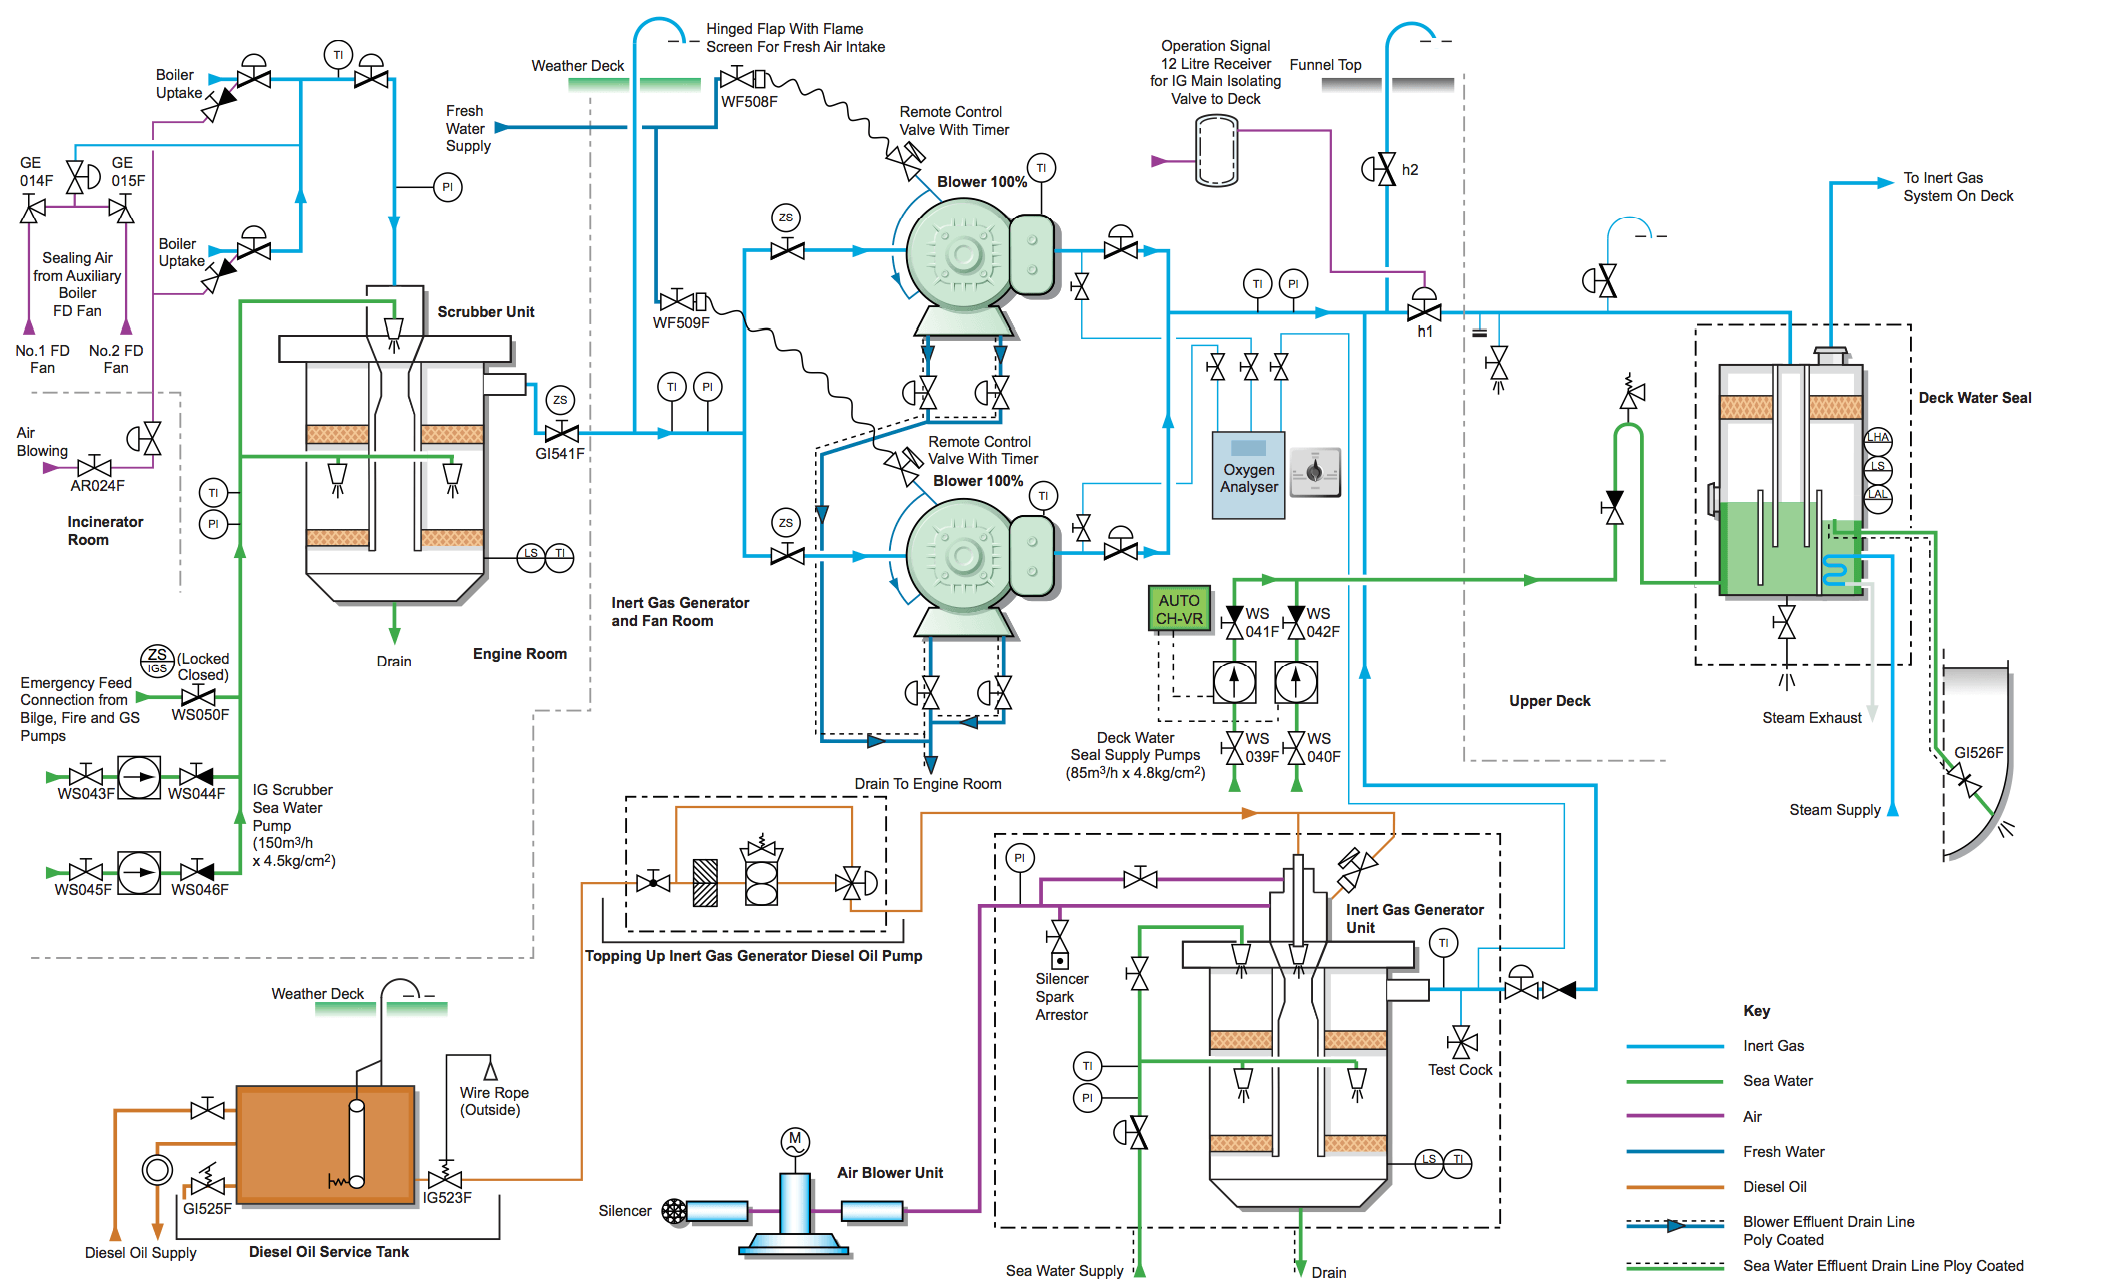 Fabulous How To Draw And Read Line Diagrams Onboard Ships Wiring Cloud Dulfrecoveryedborg